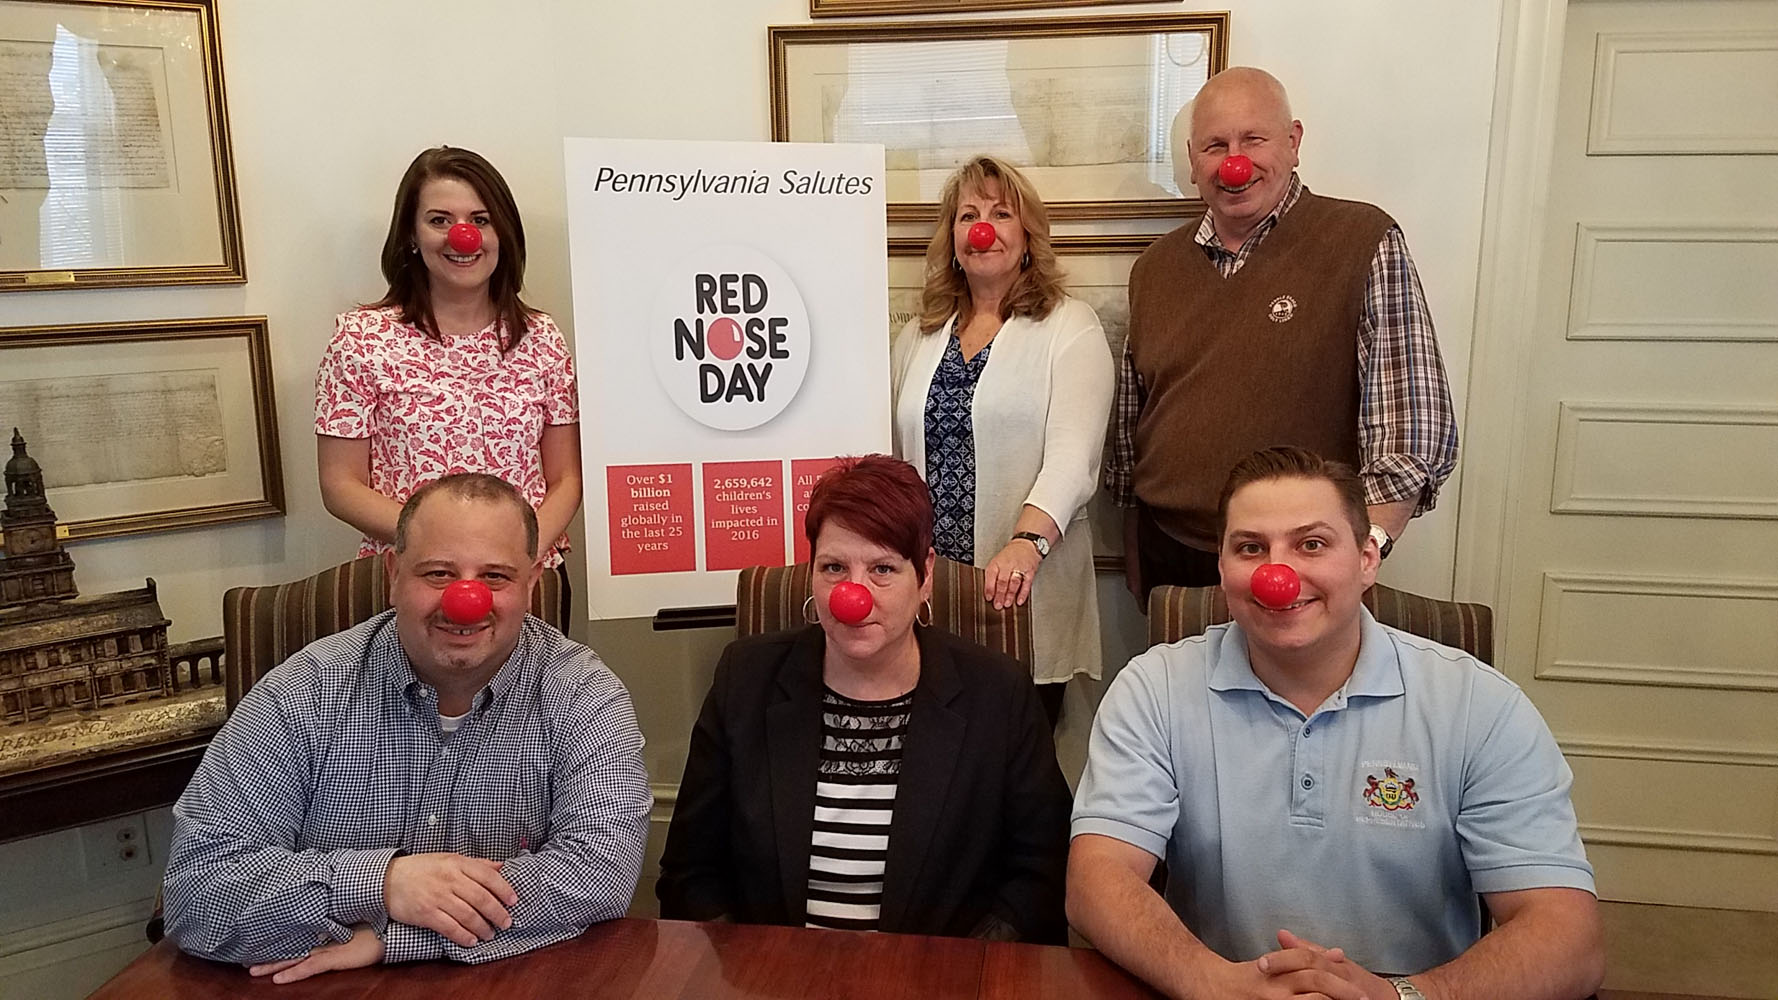 Malady & Wooten team members wearing red noses for Walgreens Red Nose Day 2017